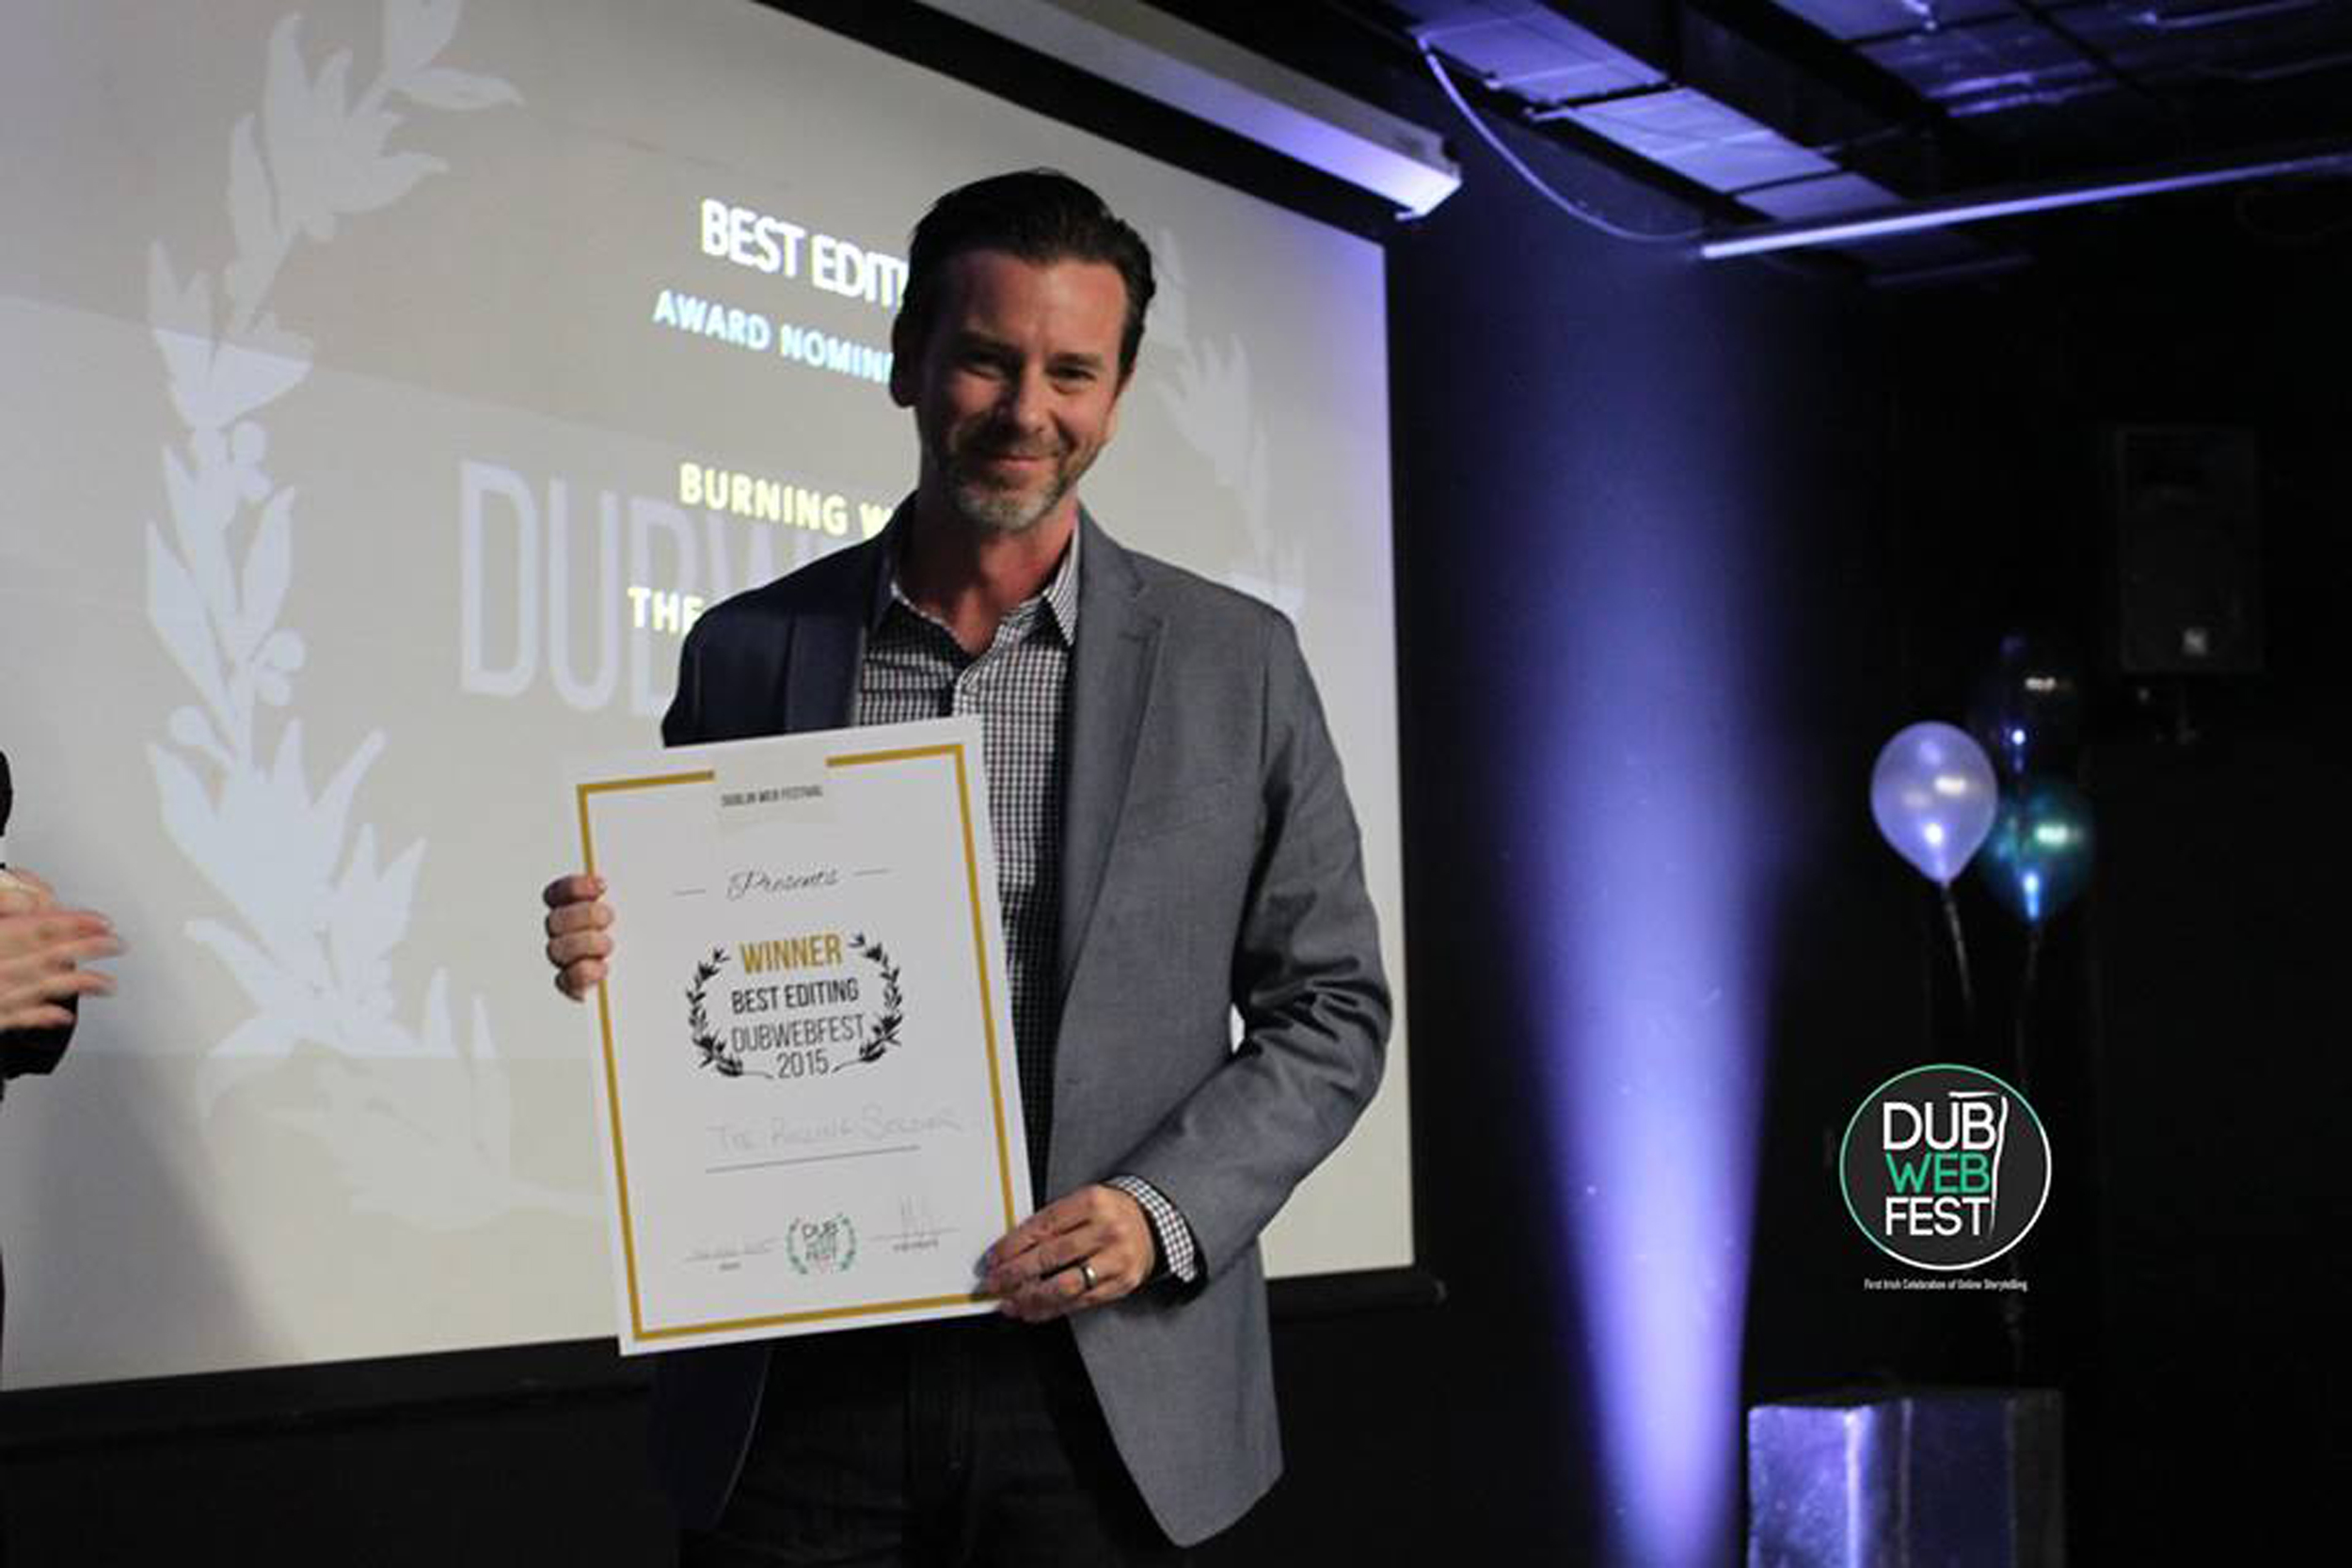 JOHN TAGUE ACCEPTING THE BEST EDITING AWARD AT THE 2015 DUBLIN WEB FEST AWARDS